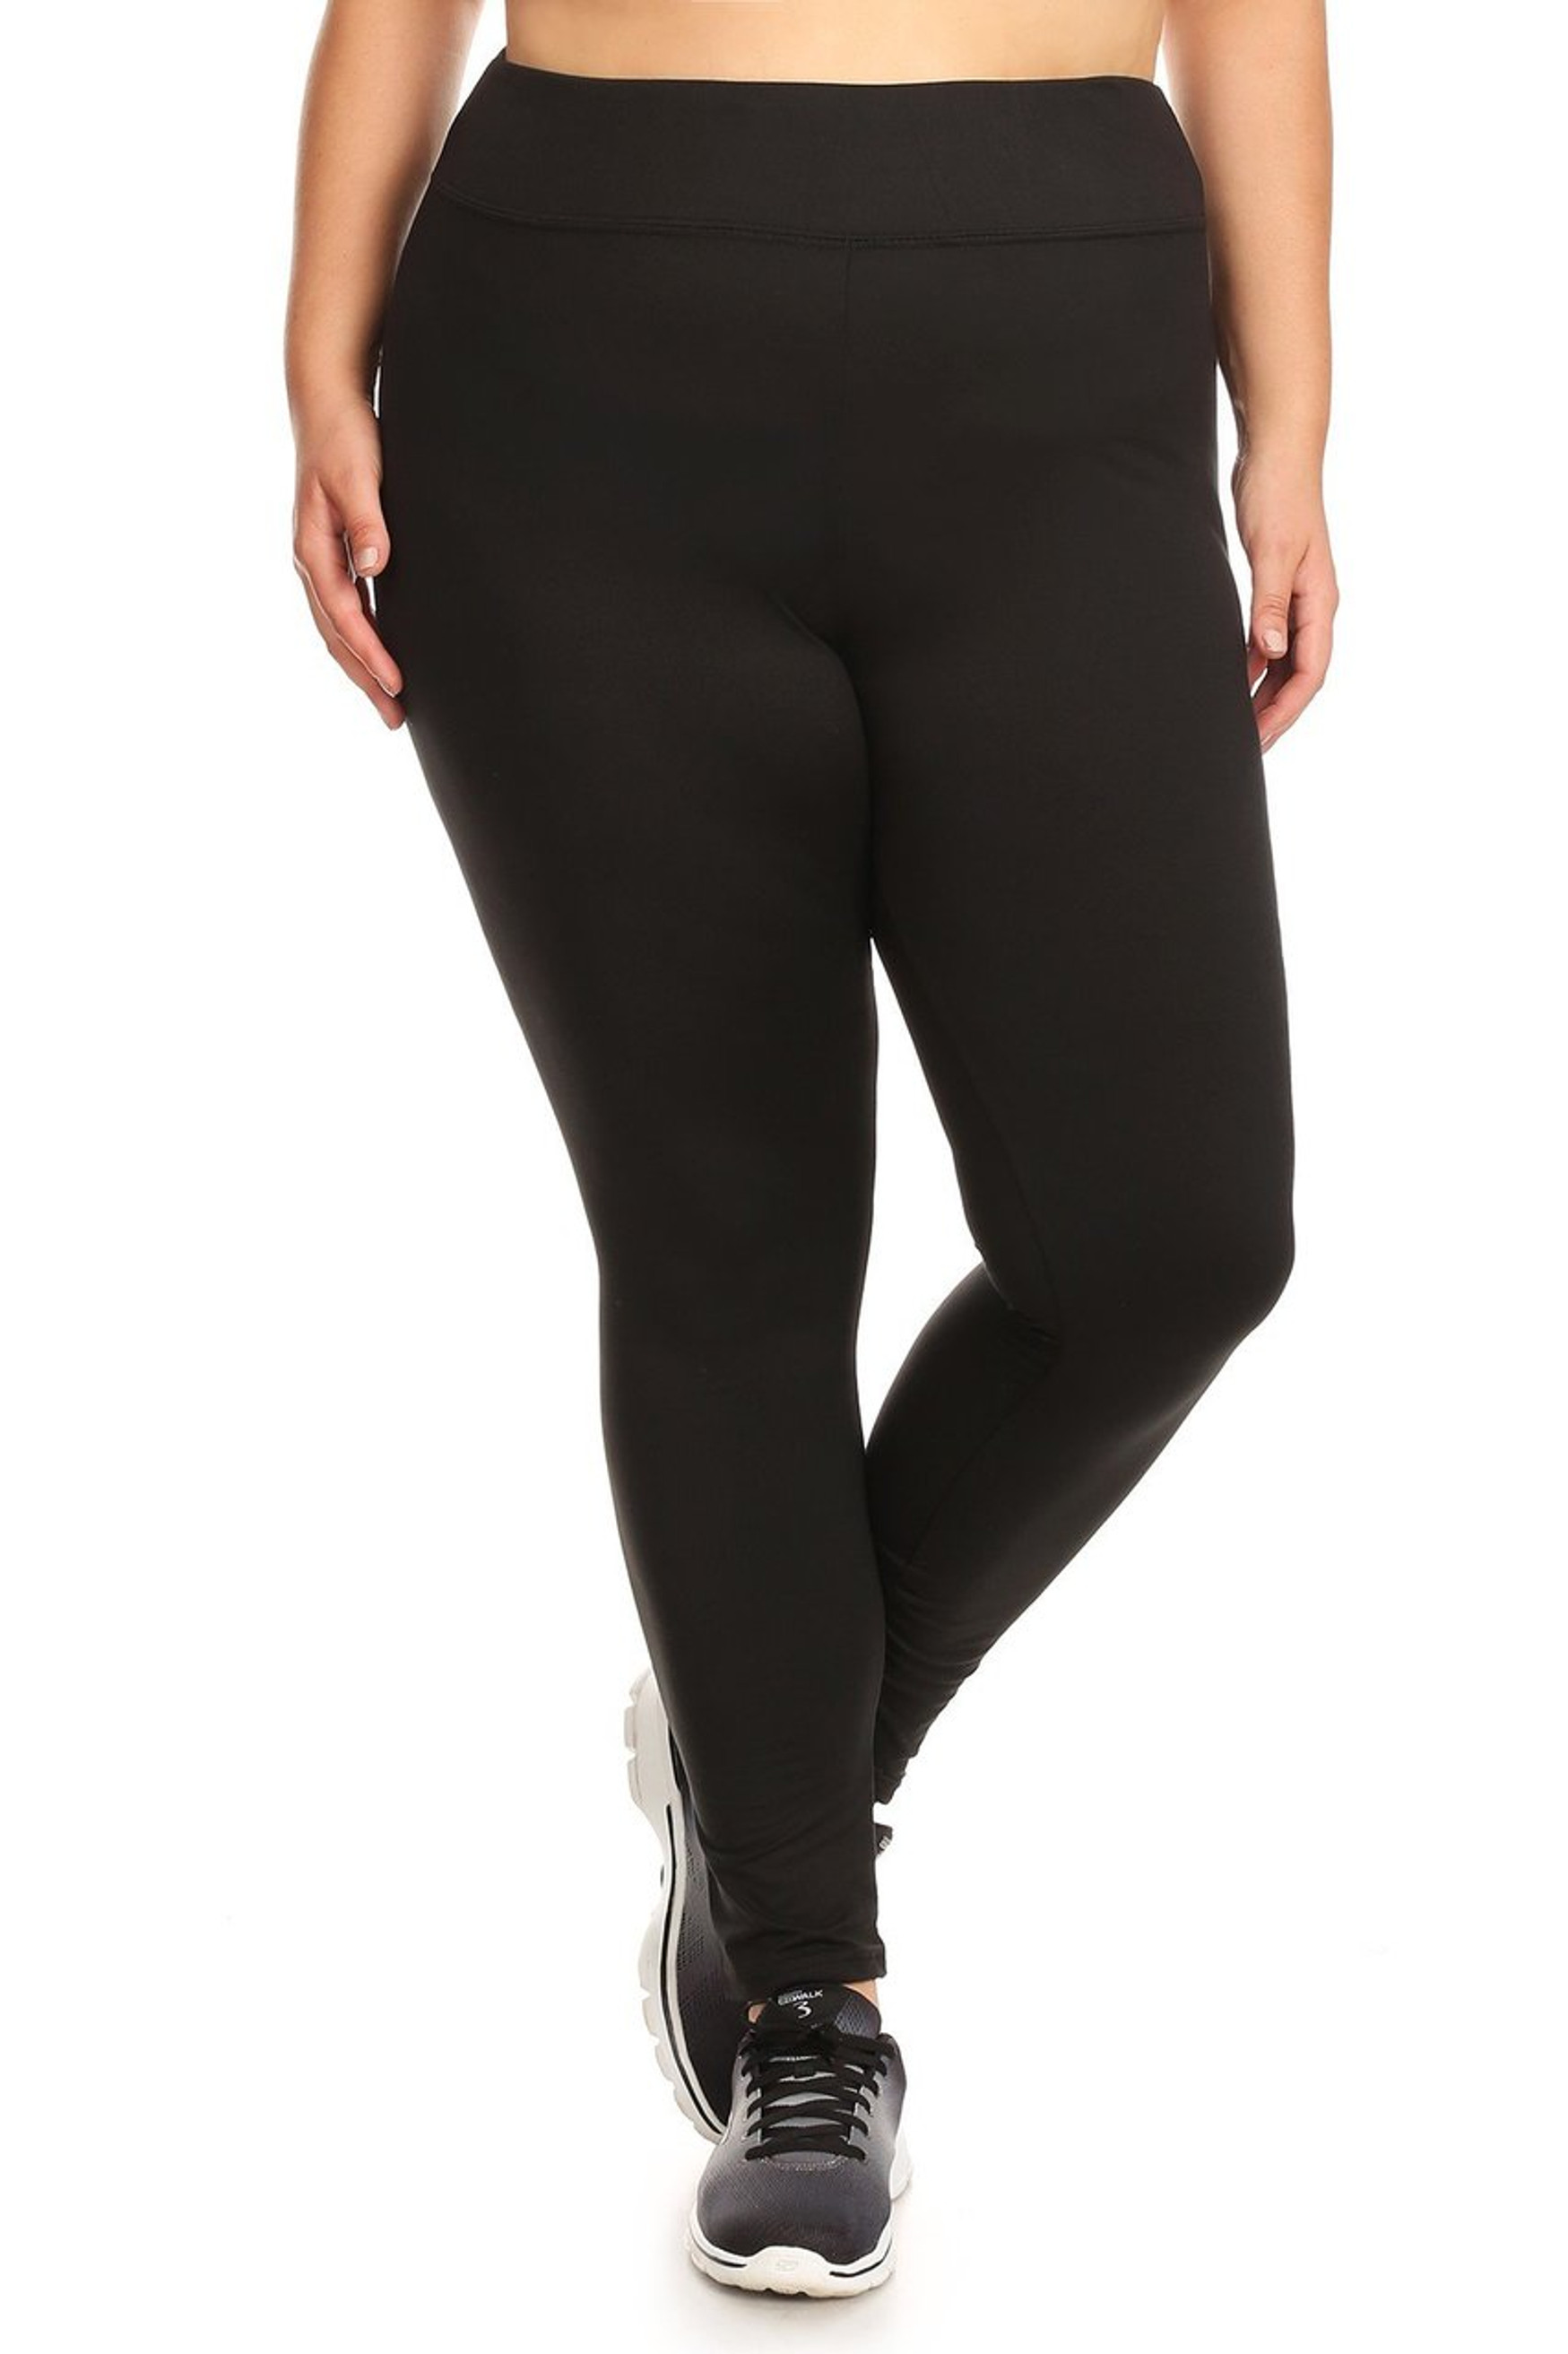 Black front image of X7L105 - High Waisted Fleece Lined Sport Plus Size Leggings